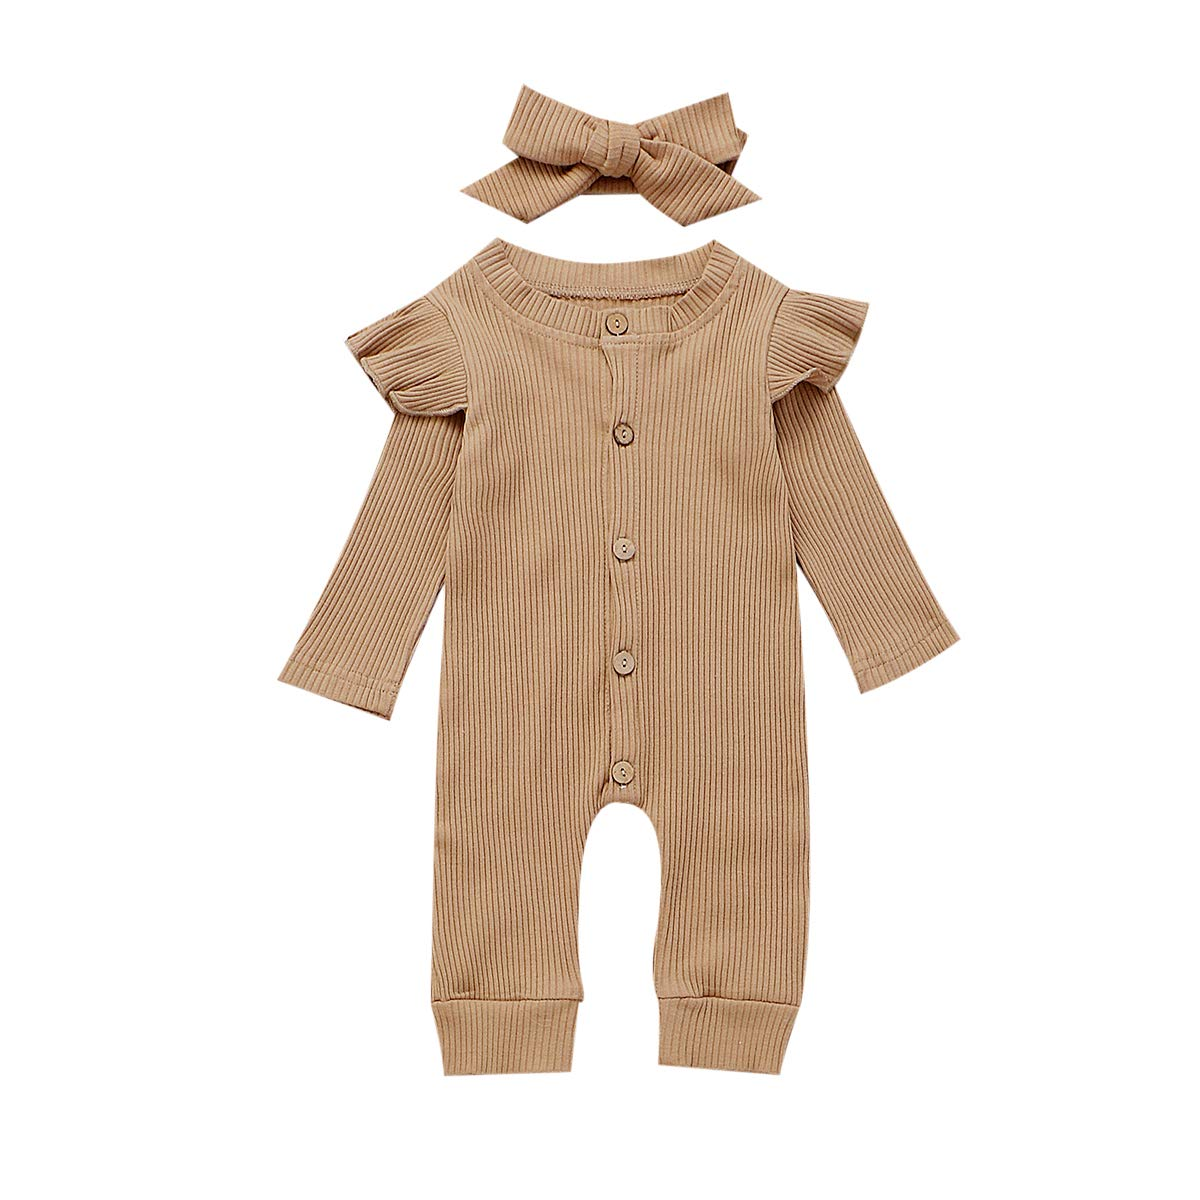 Fiomva Newborn Infant Baby Girl Ruffle Long Sleeve Romper One Piece Jumpsuit with Headband Fall Clothes Outfits